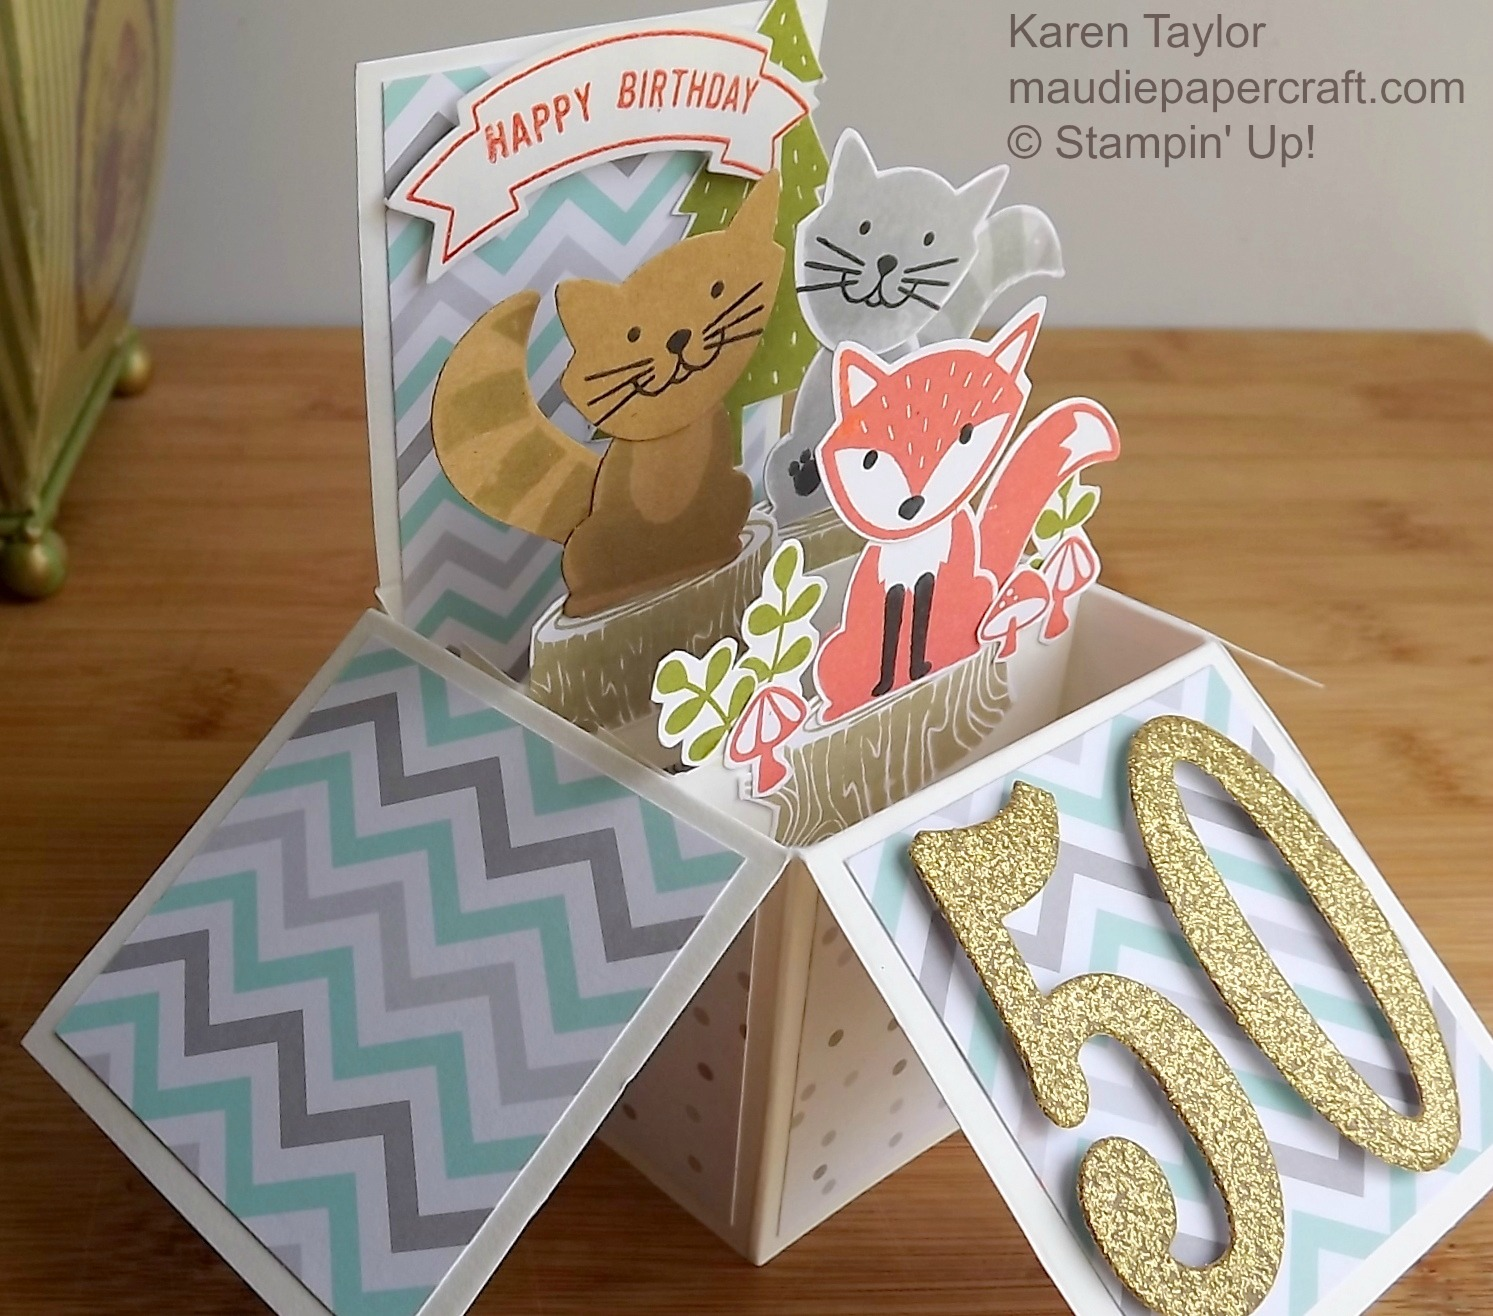 Mau Papercraft Stampin Up Foxy Friends card in a box 50th